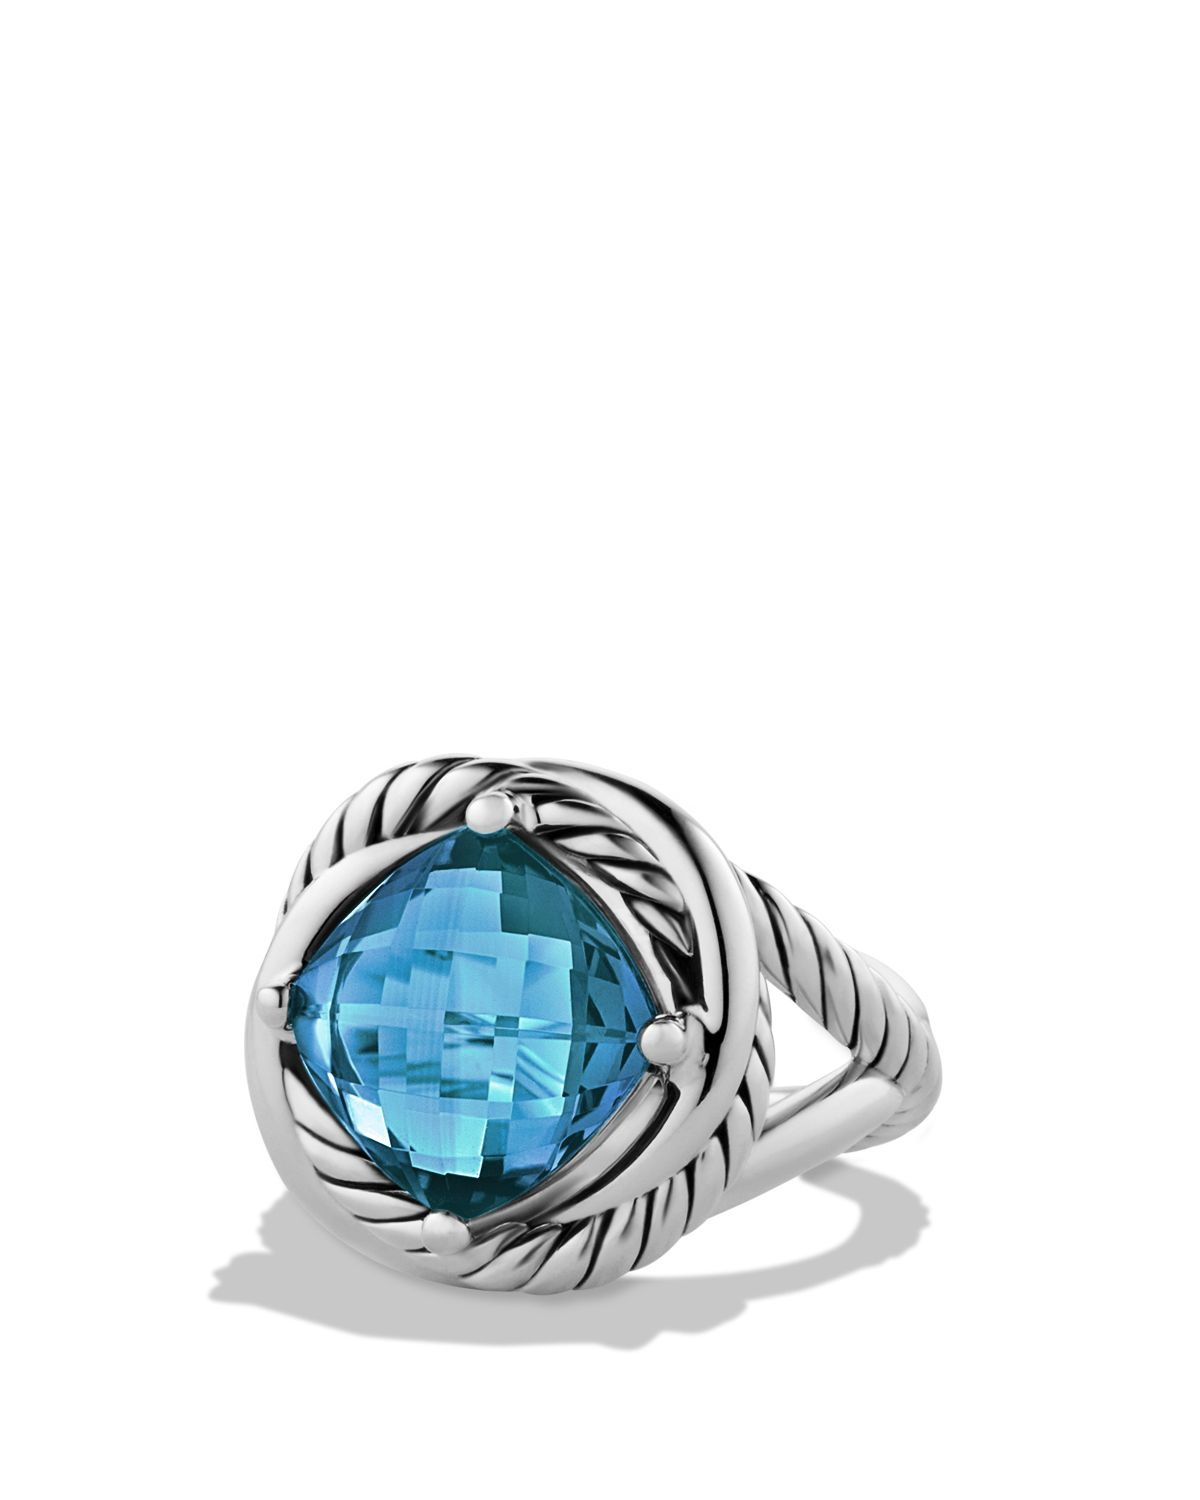 David Yurman Sterling Silver With Blue Topaz Infinity Ring Size 7 At Truefacet